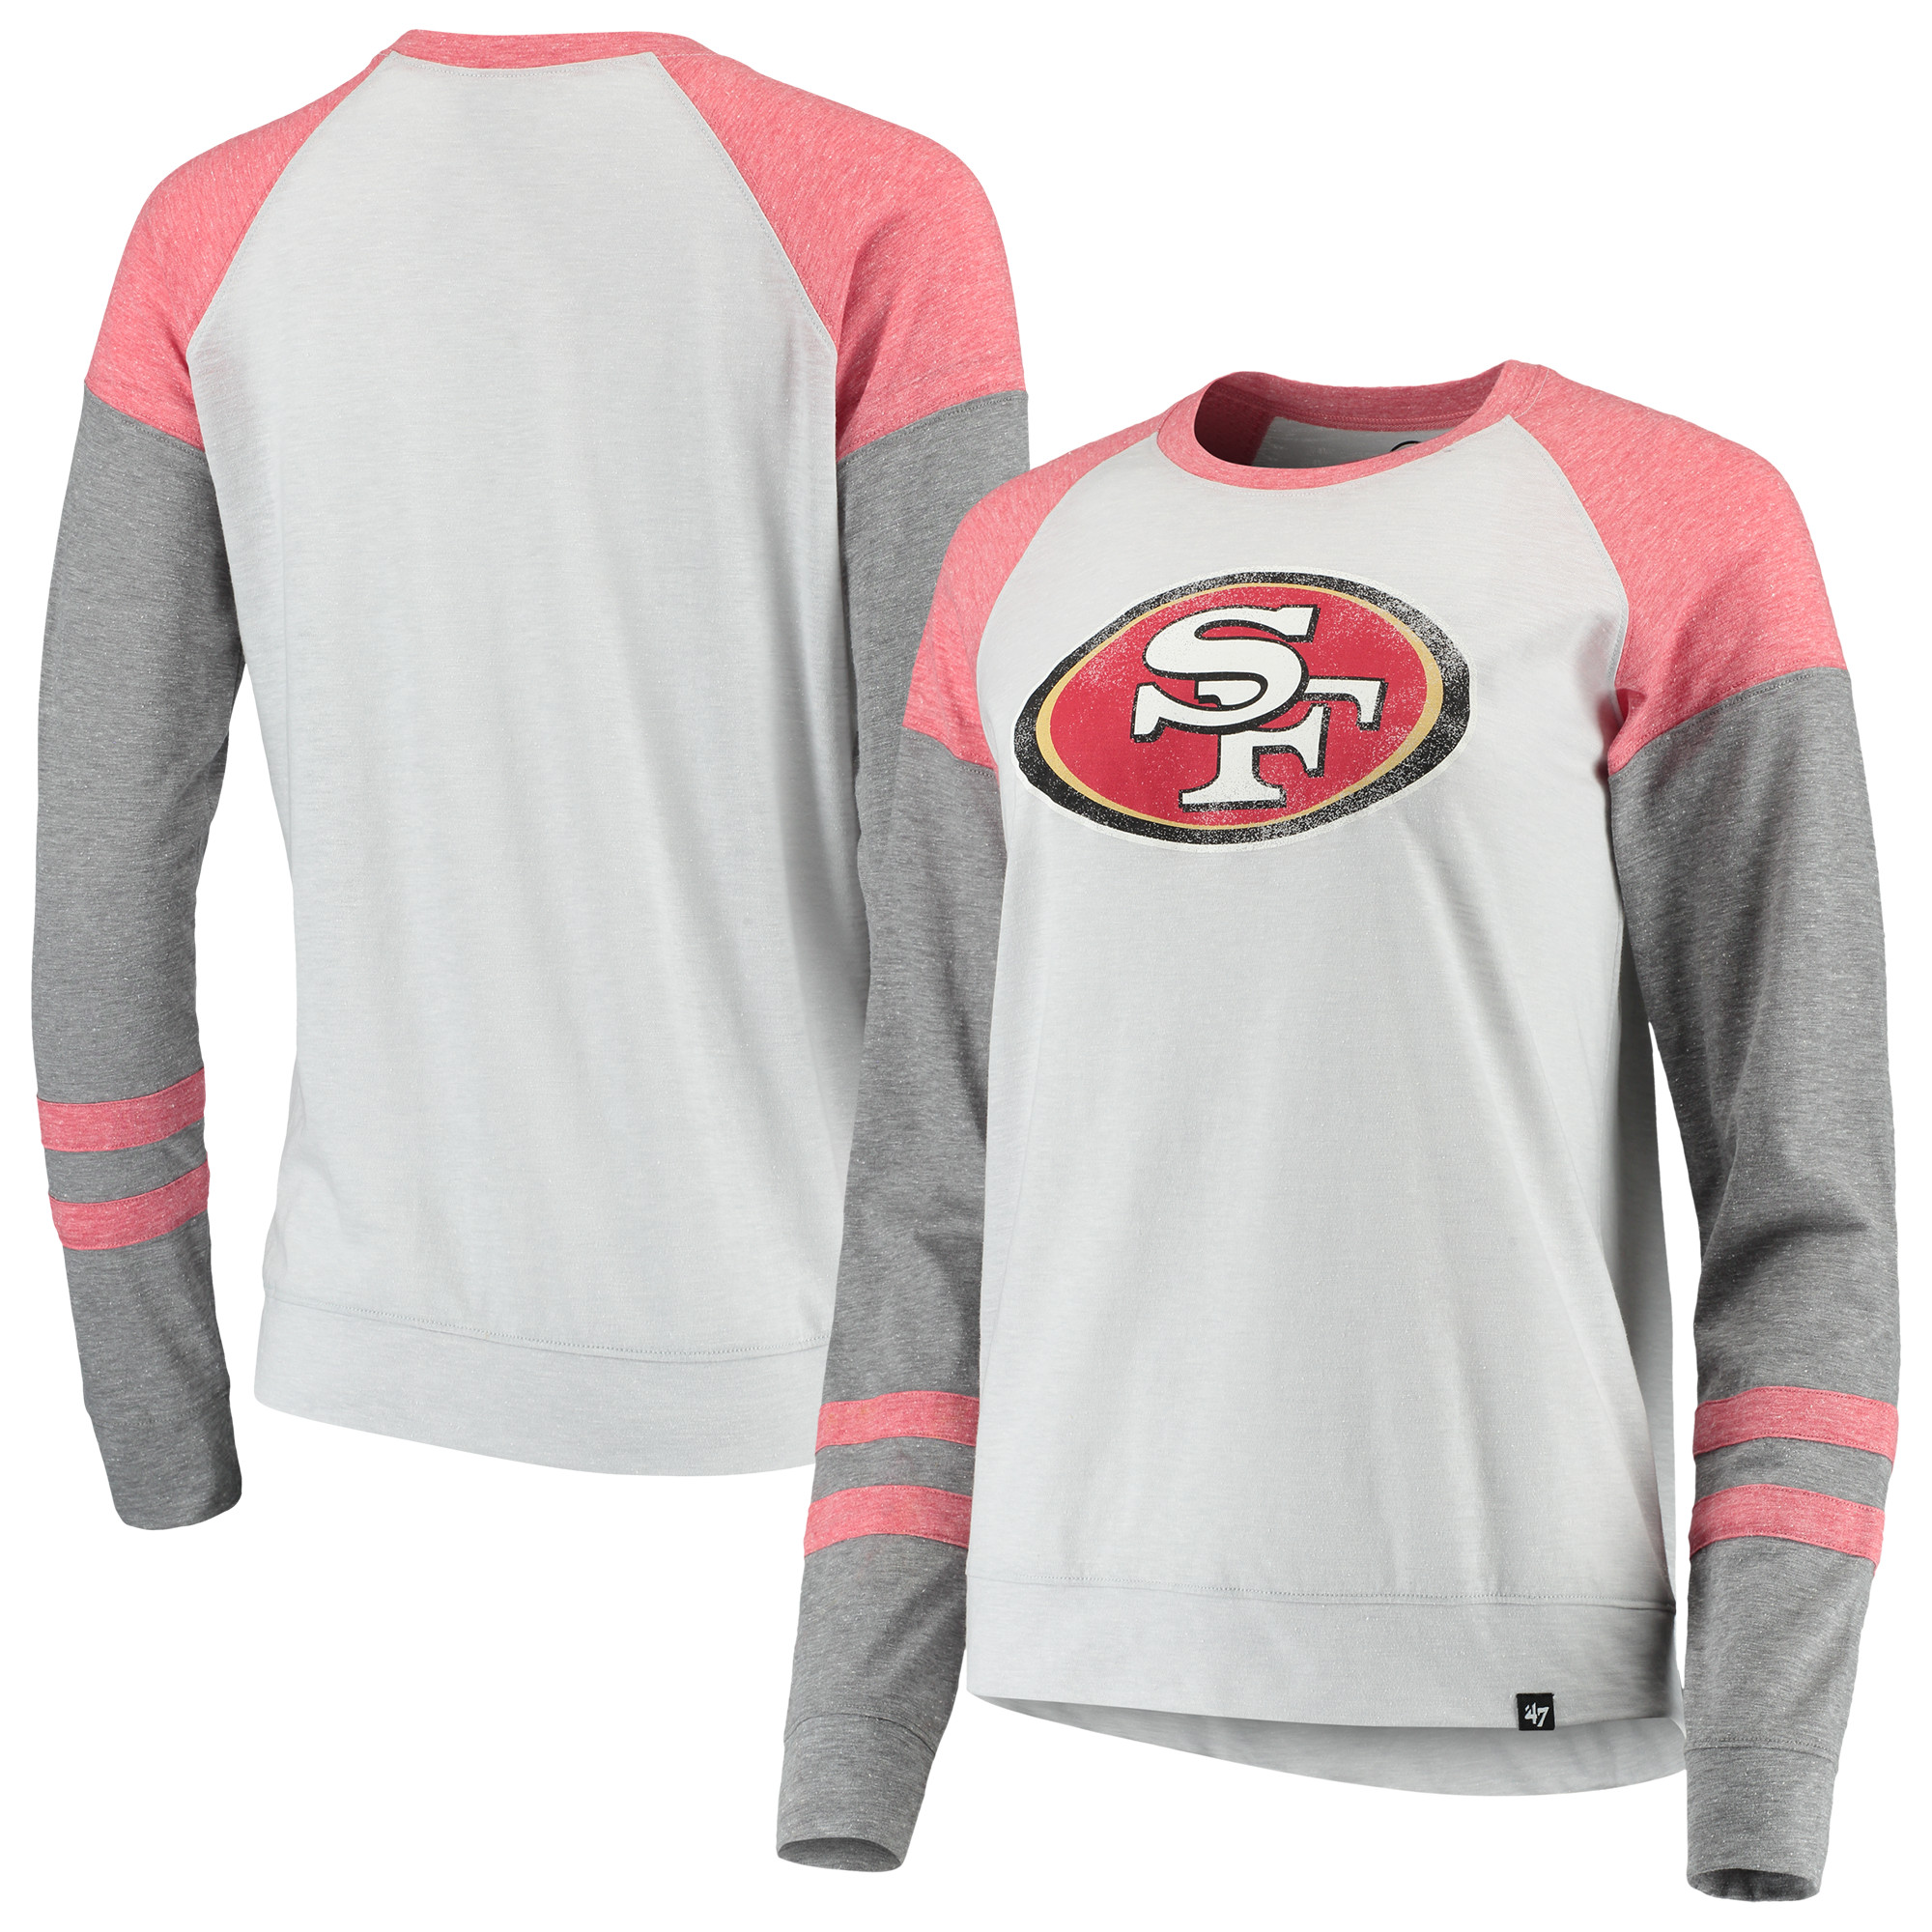 San Francisco 49ers '47 Women's Match Distressed Raglan T-Shirt - Heathered Gray